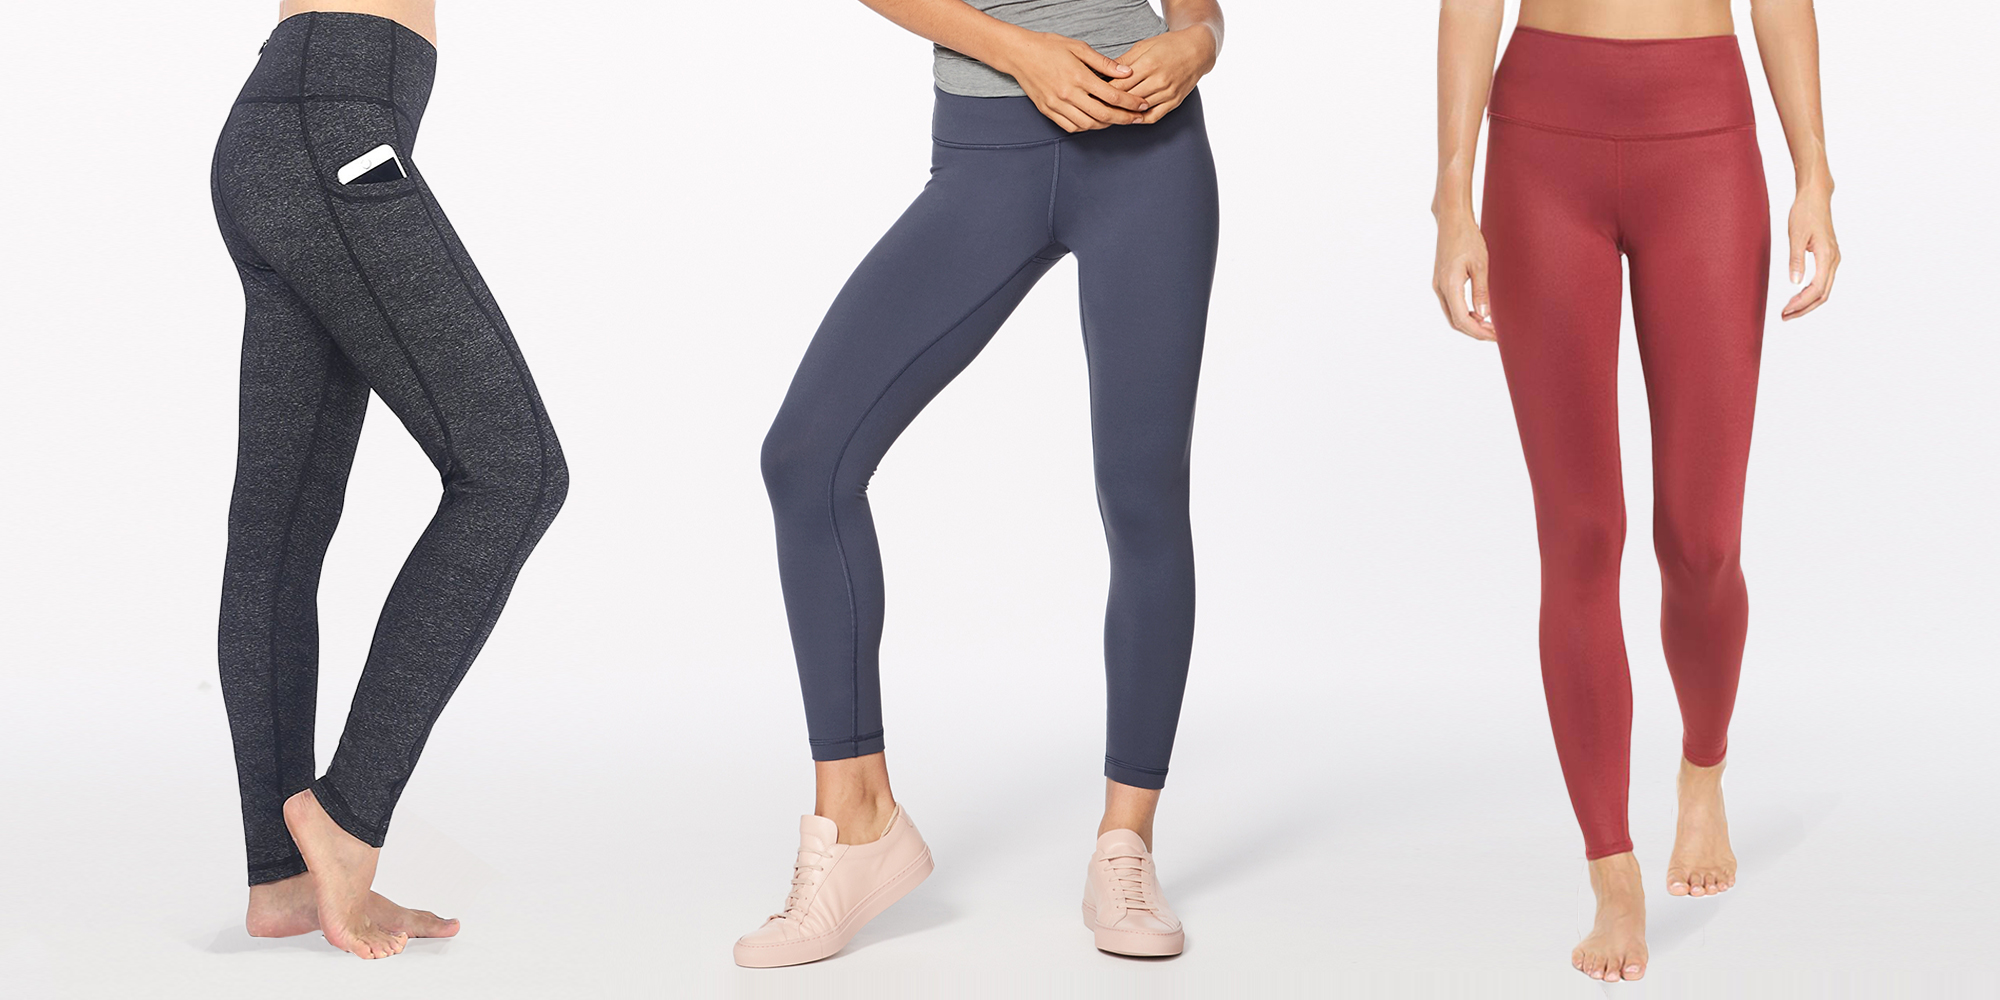 16 Best Yoga Pants For Fall 2018 Must Have Yoga Leggings And Pants